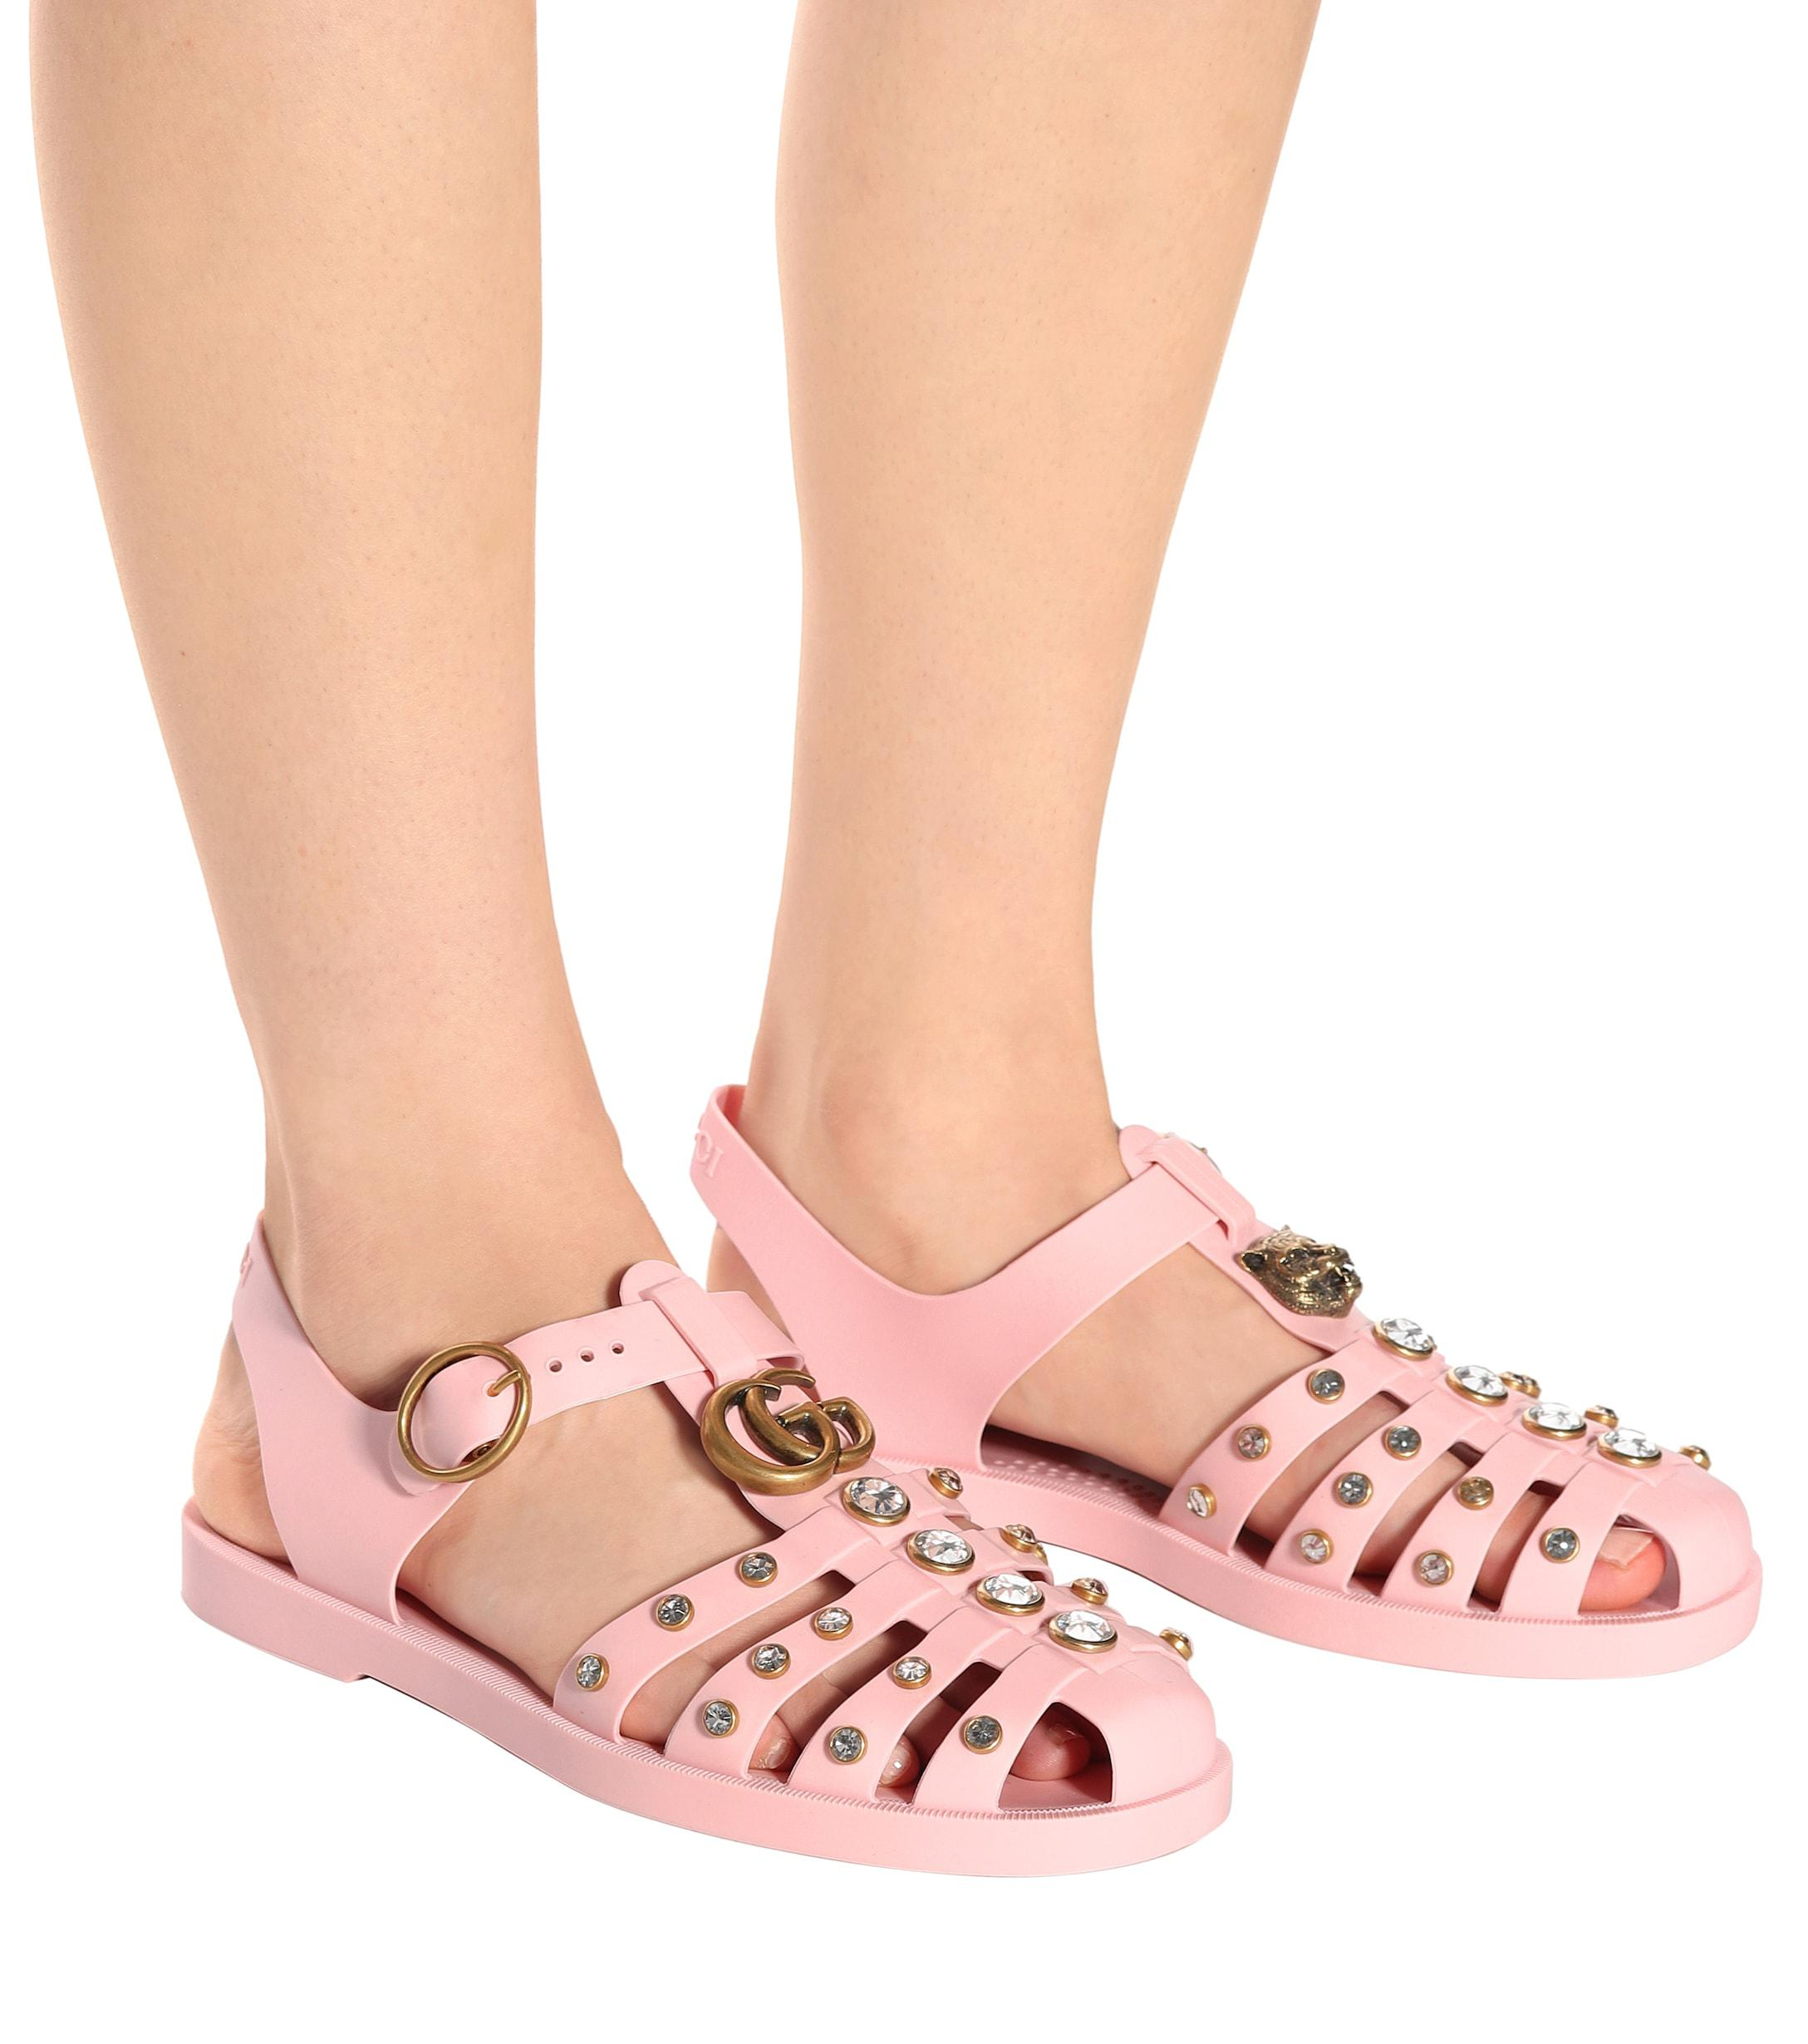 cf31bb6bc009 Lyst - Gucci Crystal-embellished Jelly Sandals in Pink